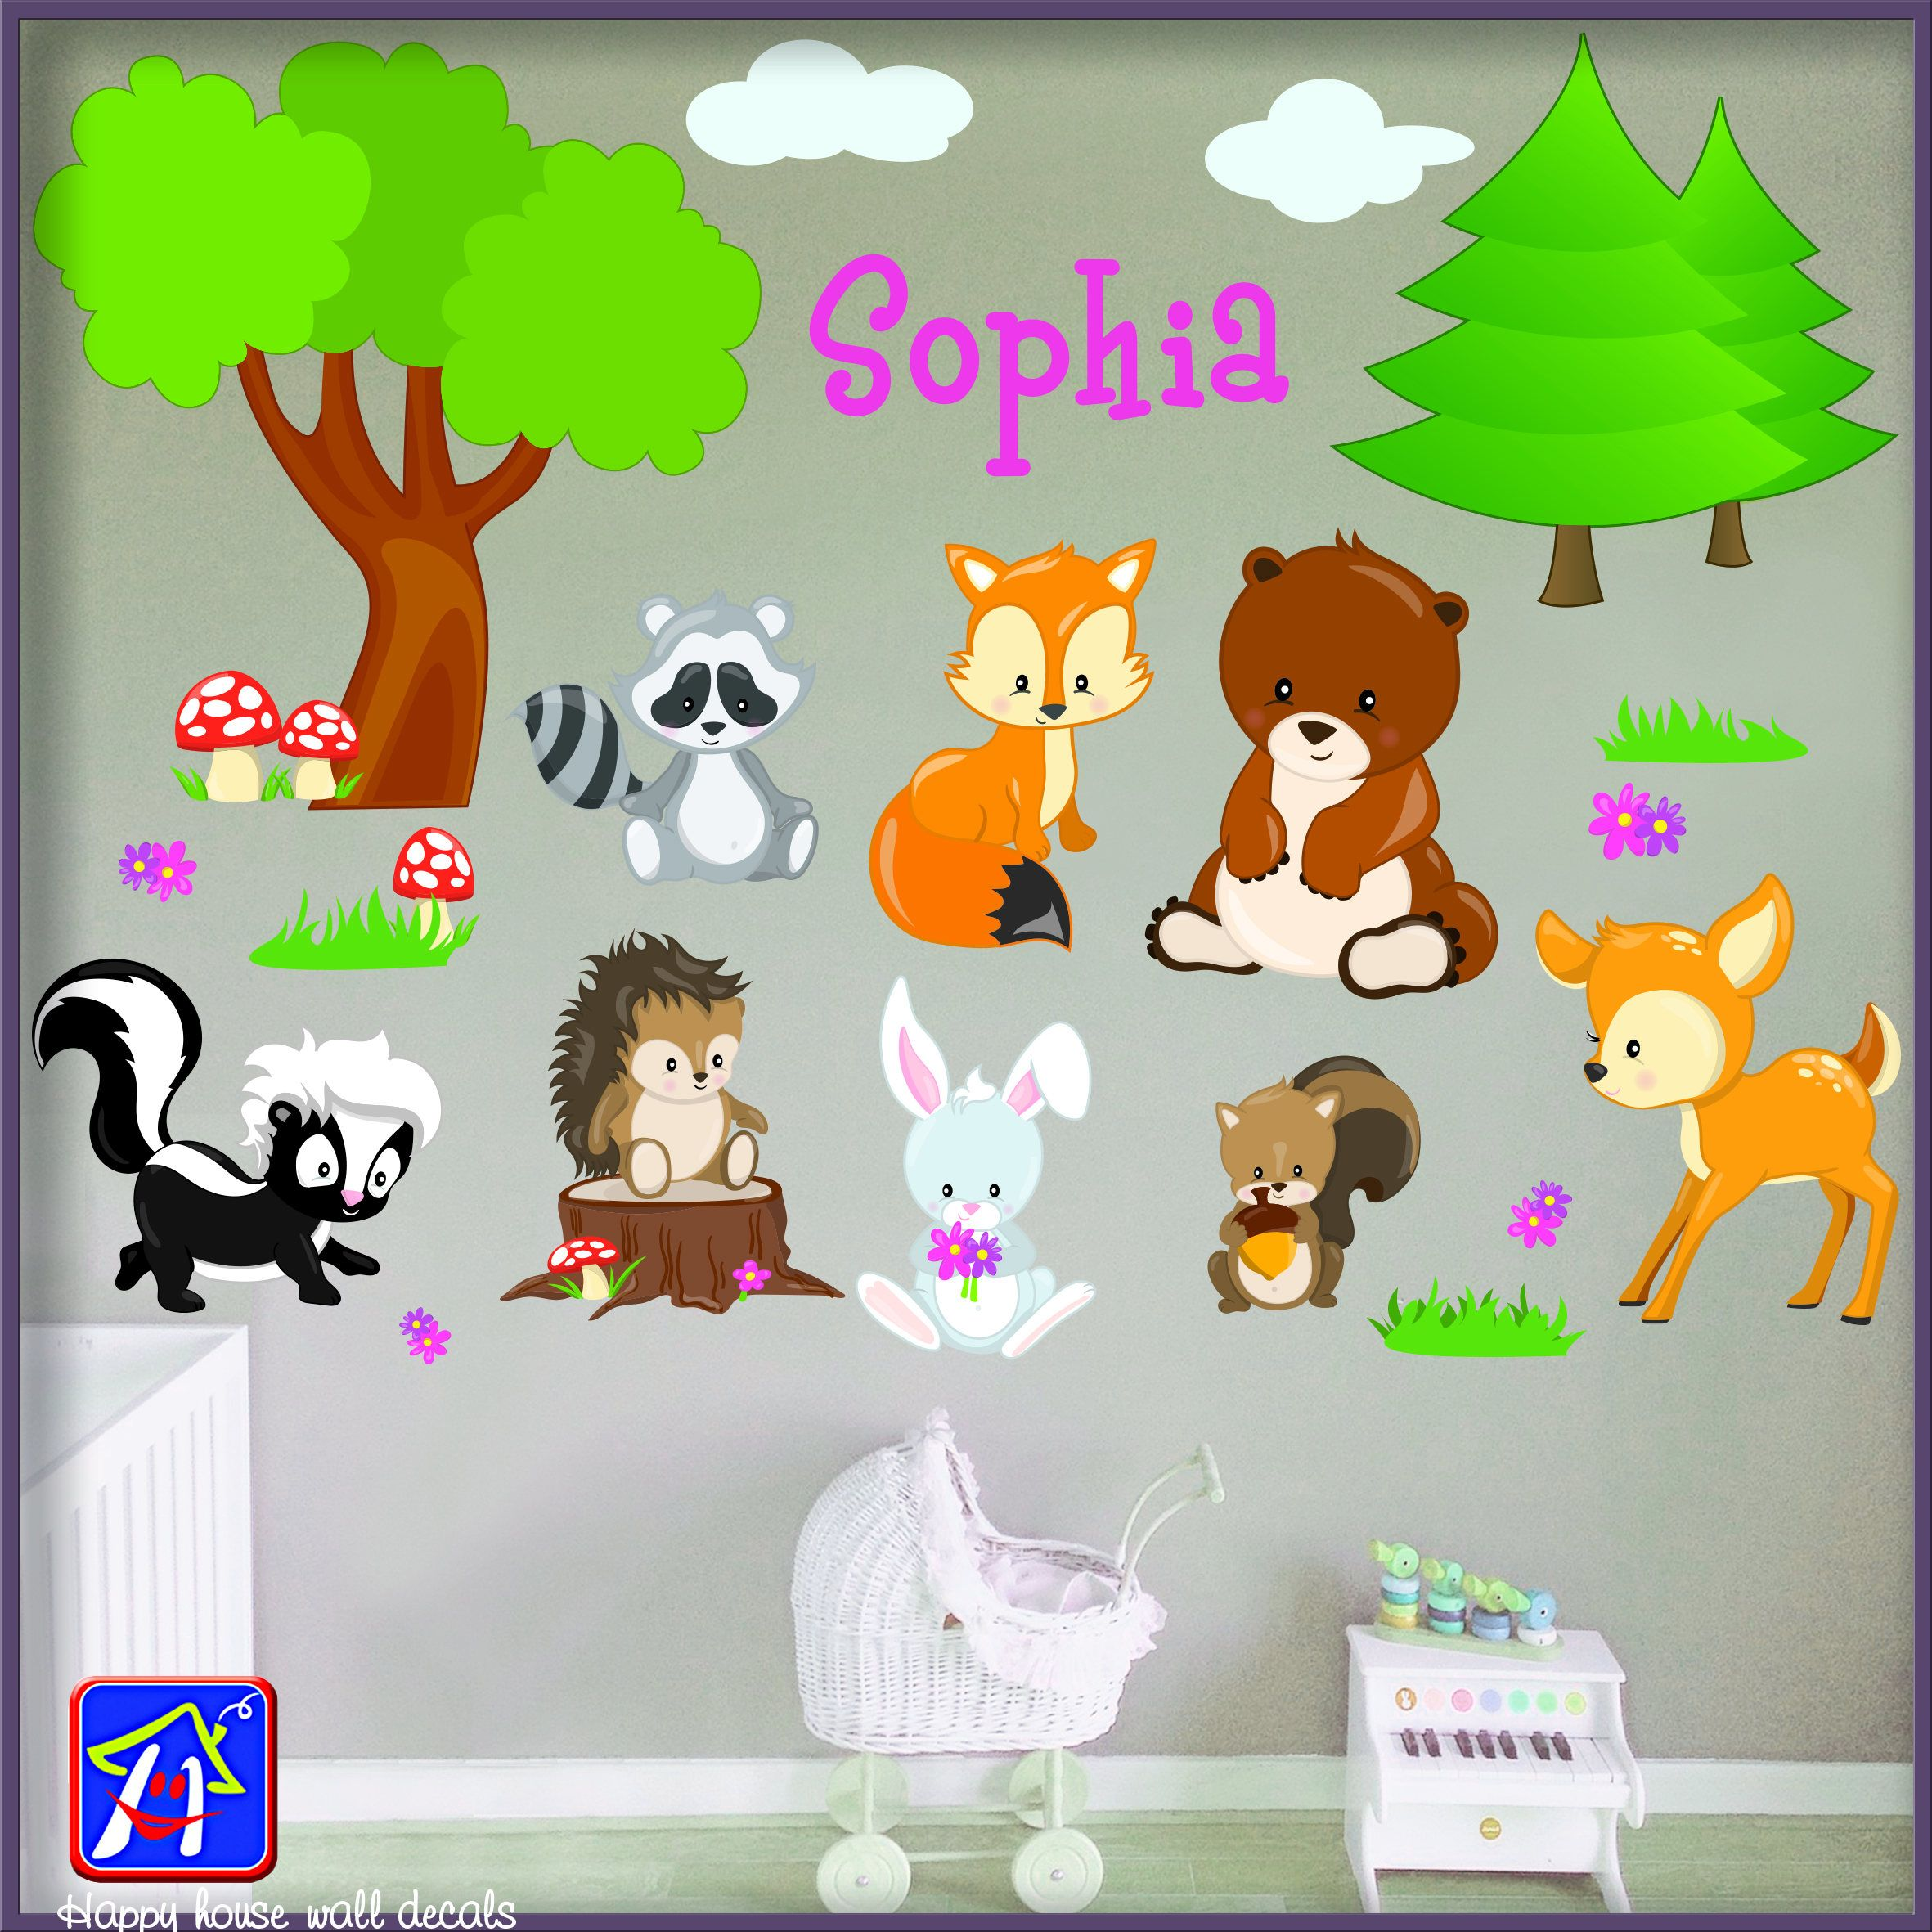 Woodland Animals Decal - Forest Animals Wall Decal - Forest Scene Wall Decals - Forest Animals nursery wall decals - Cute Animals stickers by HappyHouseNo1 ...  sc 1 st  Pinterest & Woodland Animals Wall Decal - Forest Animals Decal - Forest Scene ...